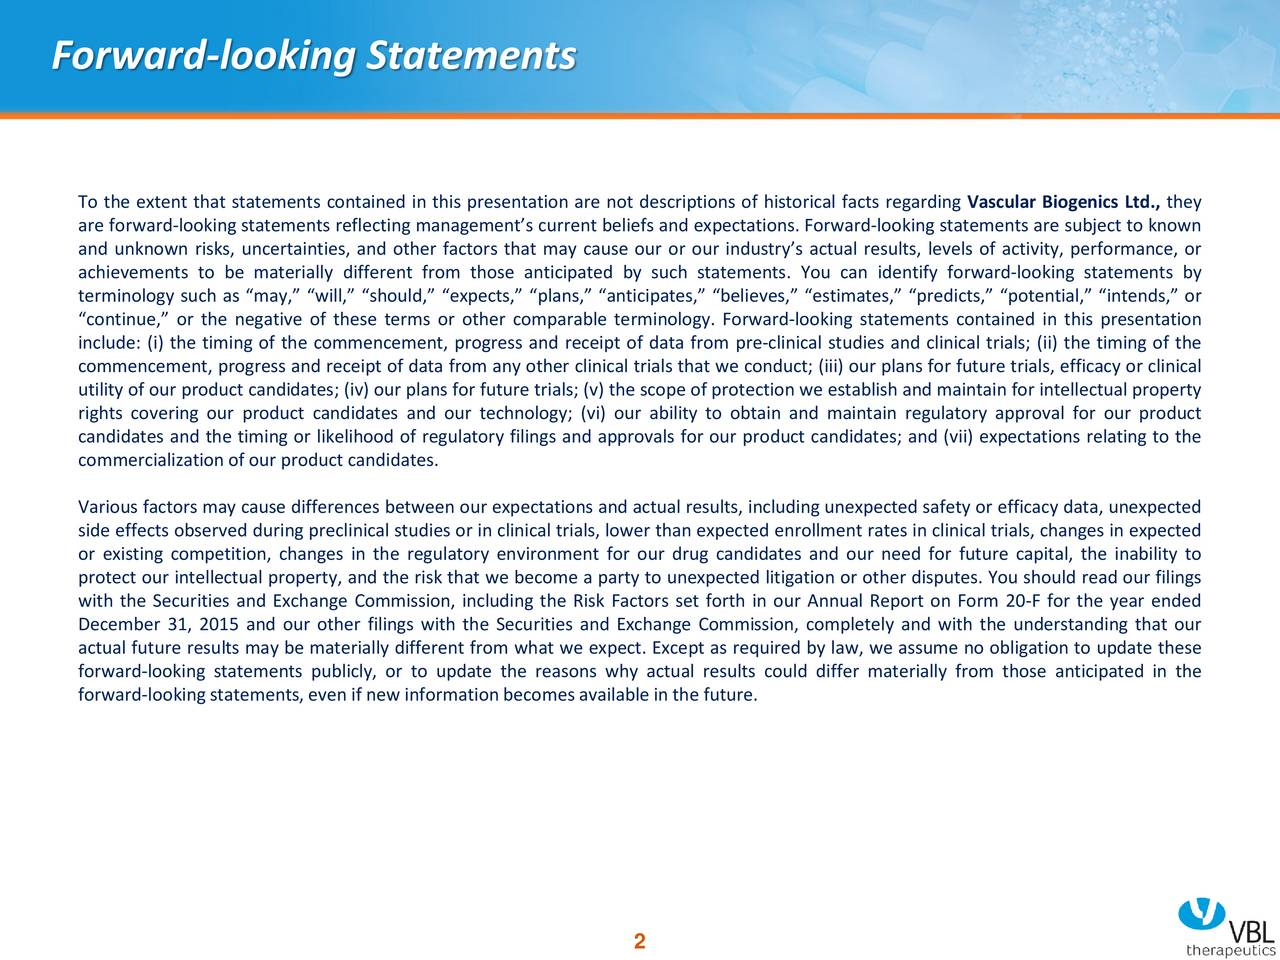 To the extent that statements contained in this presentation are not descriptions of historical facts regarding Vascular Biogenics Ltd., they are forward-looking statements reflecting managements current beliefs and expectations. Forward-looking statements are subject to known and unknown risks, uncertainties, and other factors that may cause our or our industrys actual results, levels of activity, performance, or achievements to be materially different from those anticipated by such statements. You can identify forward-looking statements by terminology such as may, will, should, expects, plans, anticipates, believes, estimates, predicts, potential, intends, or continue, or the negative of these terms or other comparable terminology. Forward-looking statements contained in this presentation include: (i) the timing of the commencement, progress and receipt of data from pre-clinical studies and clinical trials; (ii) the timing of the commencement, progress and receipt of data from any other clinical trials that we conduct; (iii) our plans for future trials, efficacy or clinical utility of our product candidates; (iv) our plans for future trials; (v) the scope of protection we establish and maintain for intellectual property rights covering our product candidates and our technology; (vi) our ability to obtain and maintain regulatory approval for our product candidates and the timing or likelihood of regulatory filings and approvals for our product candidates; and (vii) expectations relating to the commercializationof our product candidates. Various factors may cause differences between our expectations and actual results, including unexpected safety or efficacy data, unexpected side effects observed during preclinical studies or in clinical trials, lower than expected enrollment rates in clinical trials, changes in expected or existing competition, changes in the regulatory environment for our drug candidates and our need for future capital, the inability to protect ou